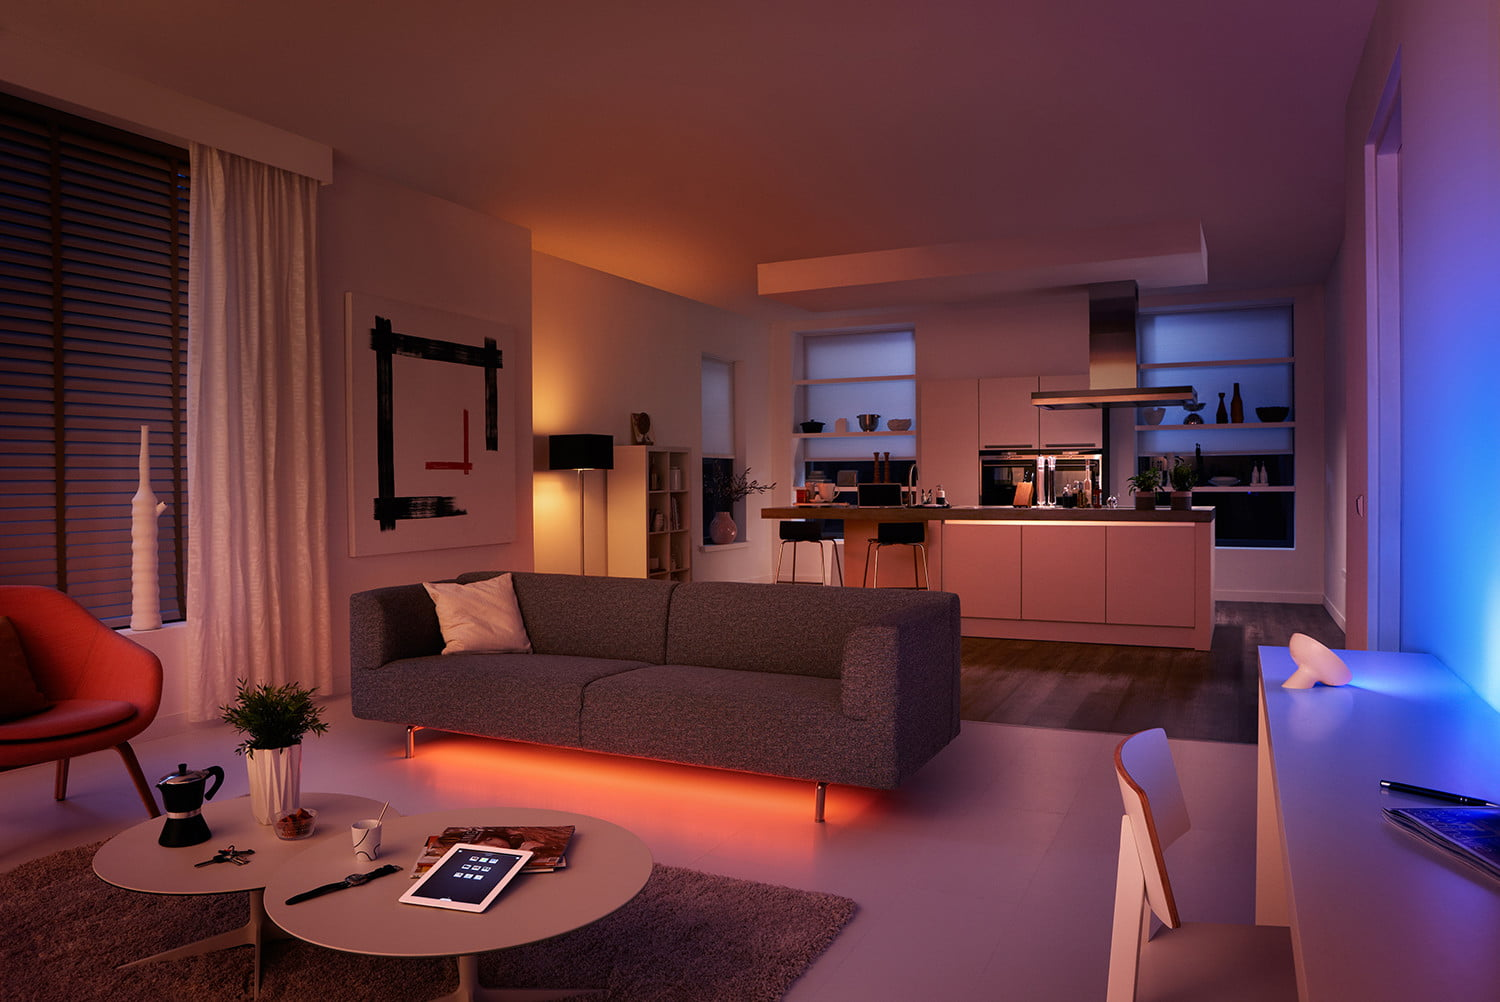 best led light bulbs for living room how much does a set cost perfect that eureka moment the to ligh up night